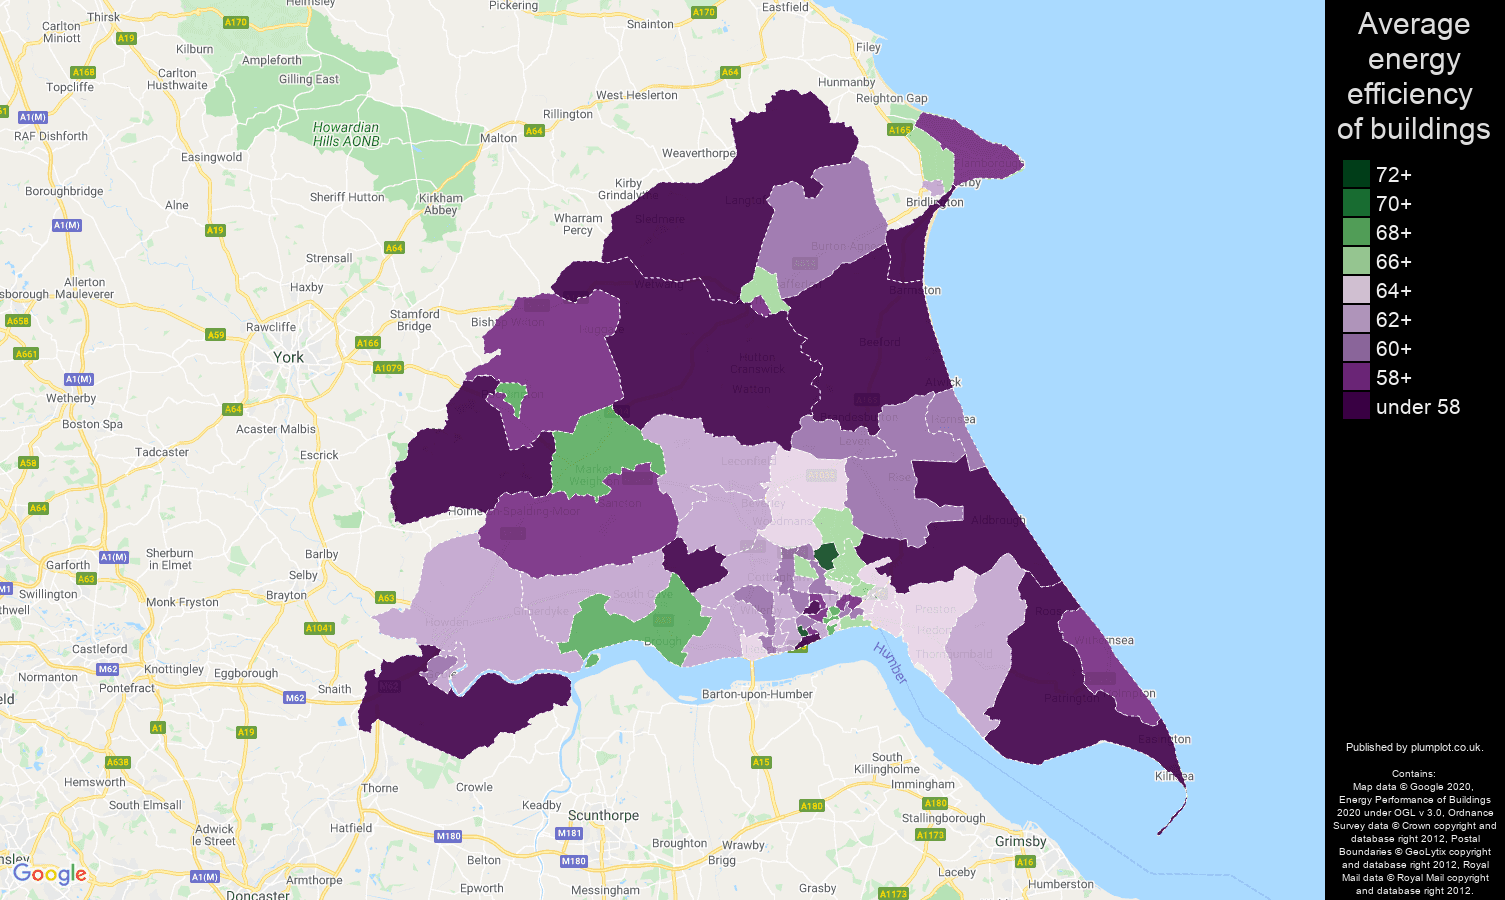 East Riding of Yorkshire map of energy efficiency of properties